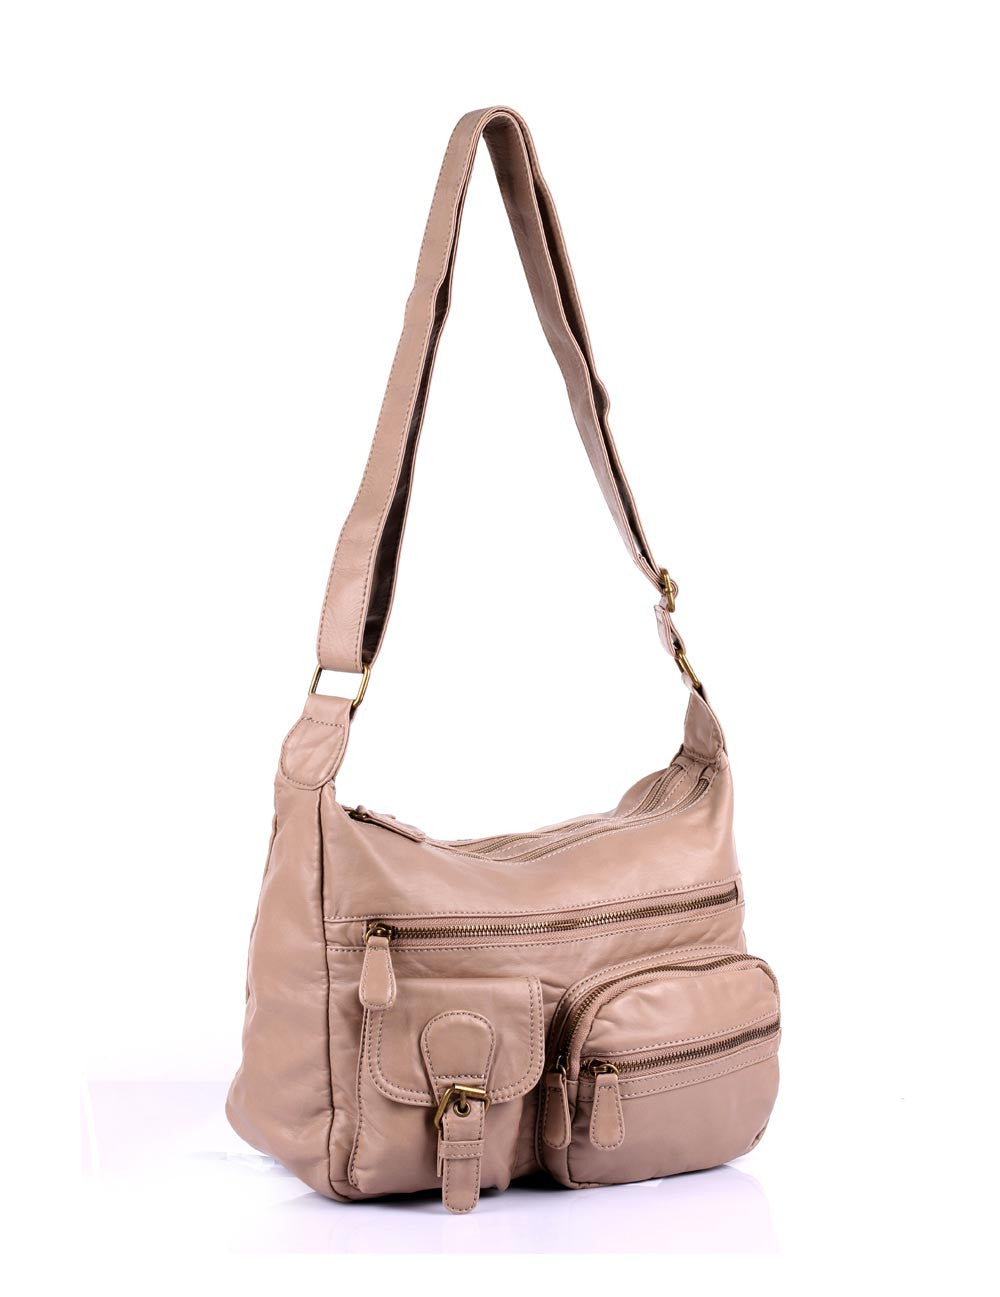 Charlotte Pre-Washed Women s Crossbody Hobo Bag VI More Colors -  karlahanson.com 63db9792494e1